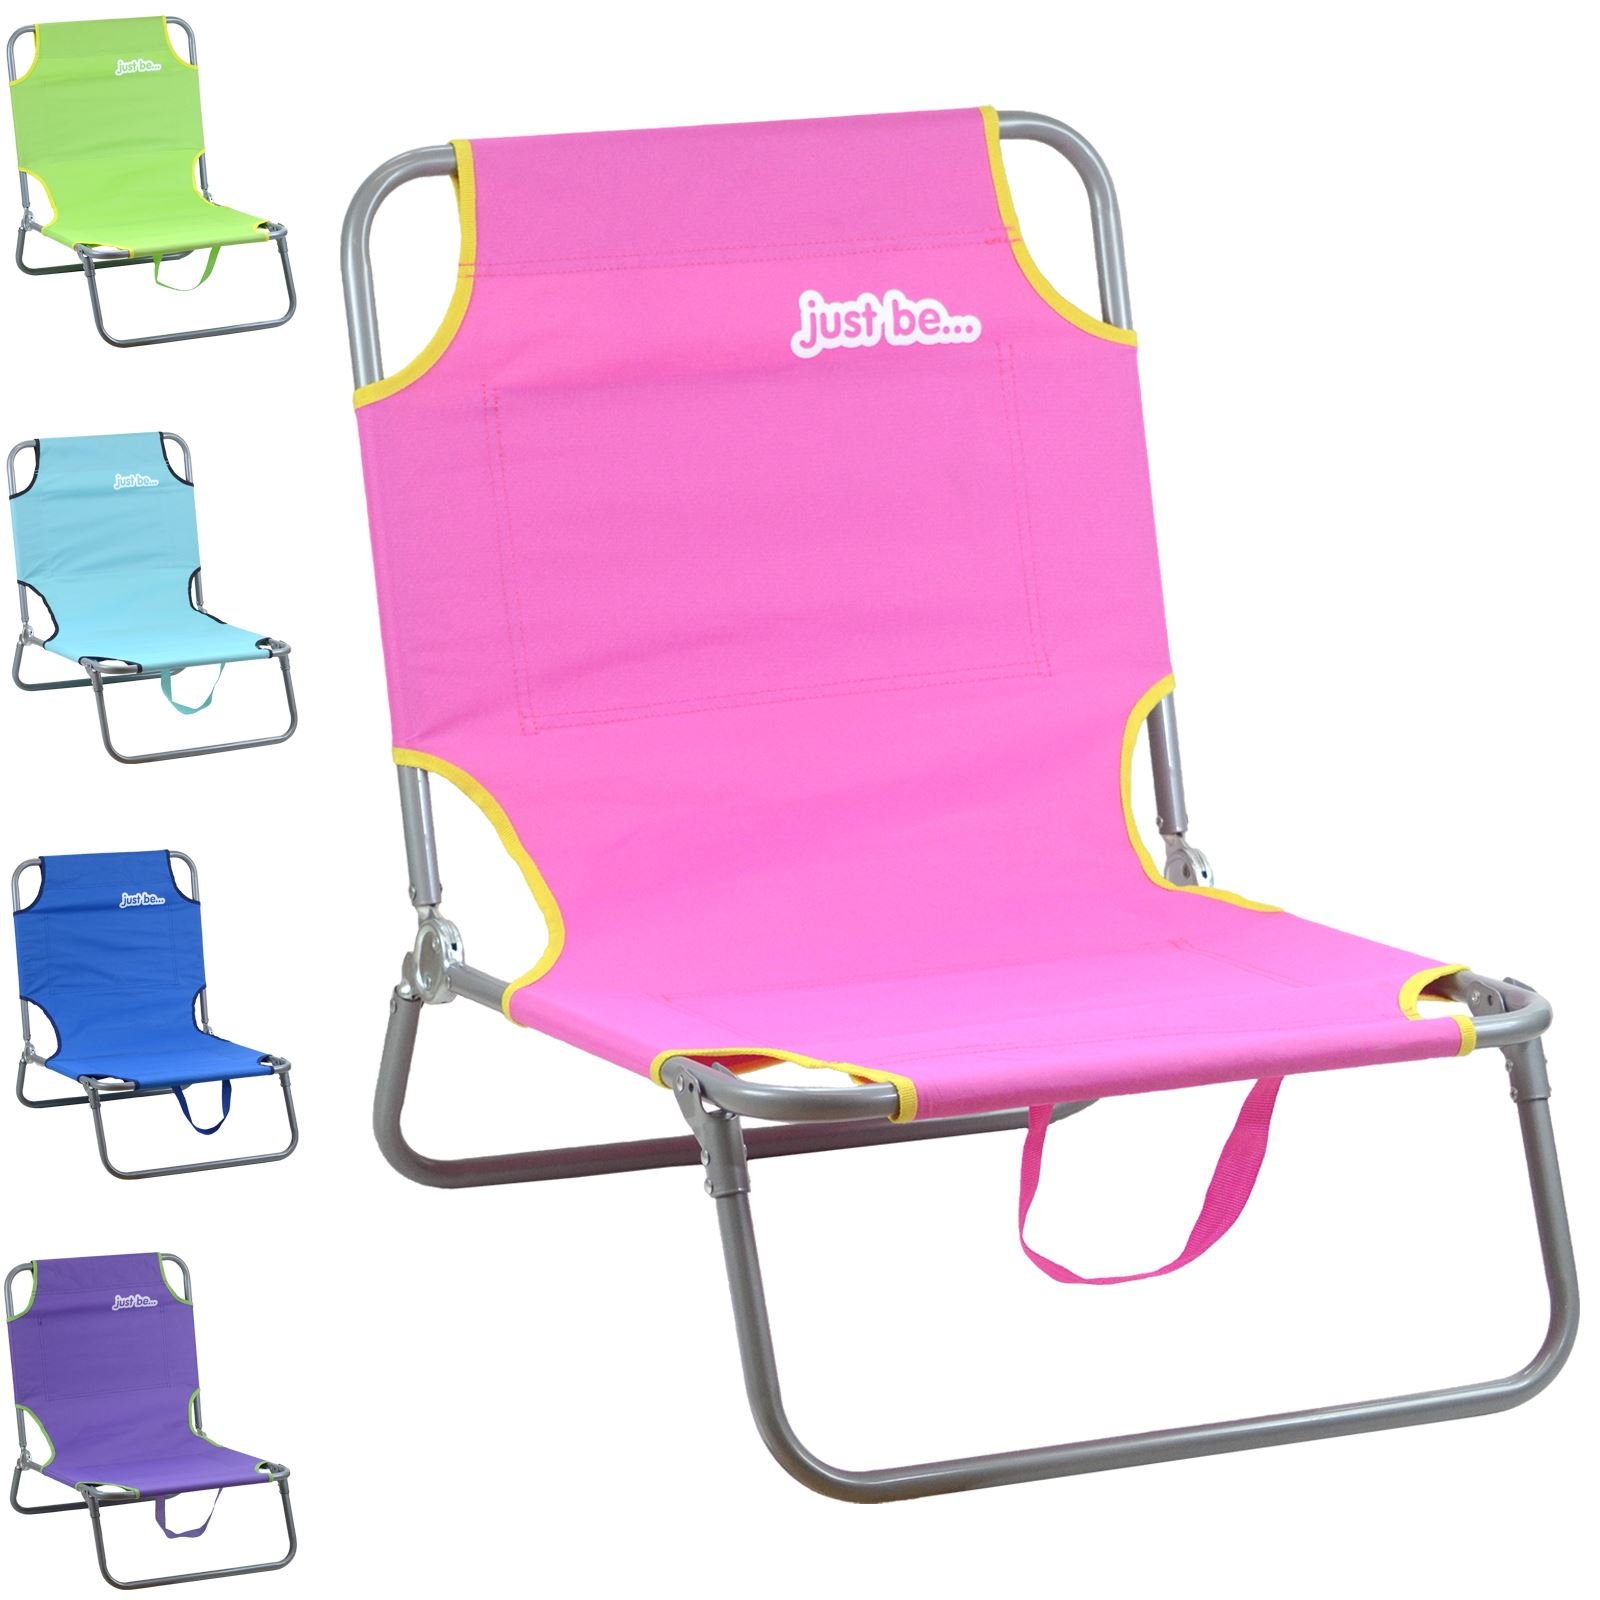 Outdoor Beach Garden Chair Side Tray For Drink Portable Folding Camping Picnic